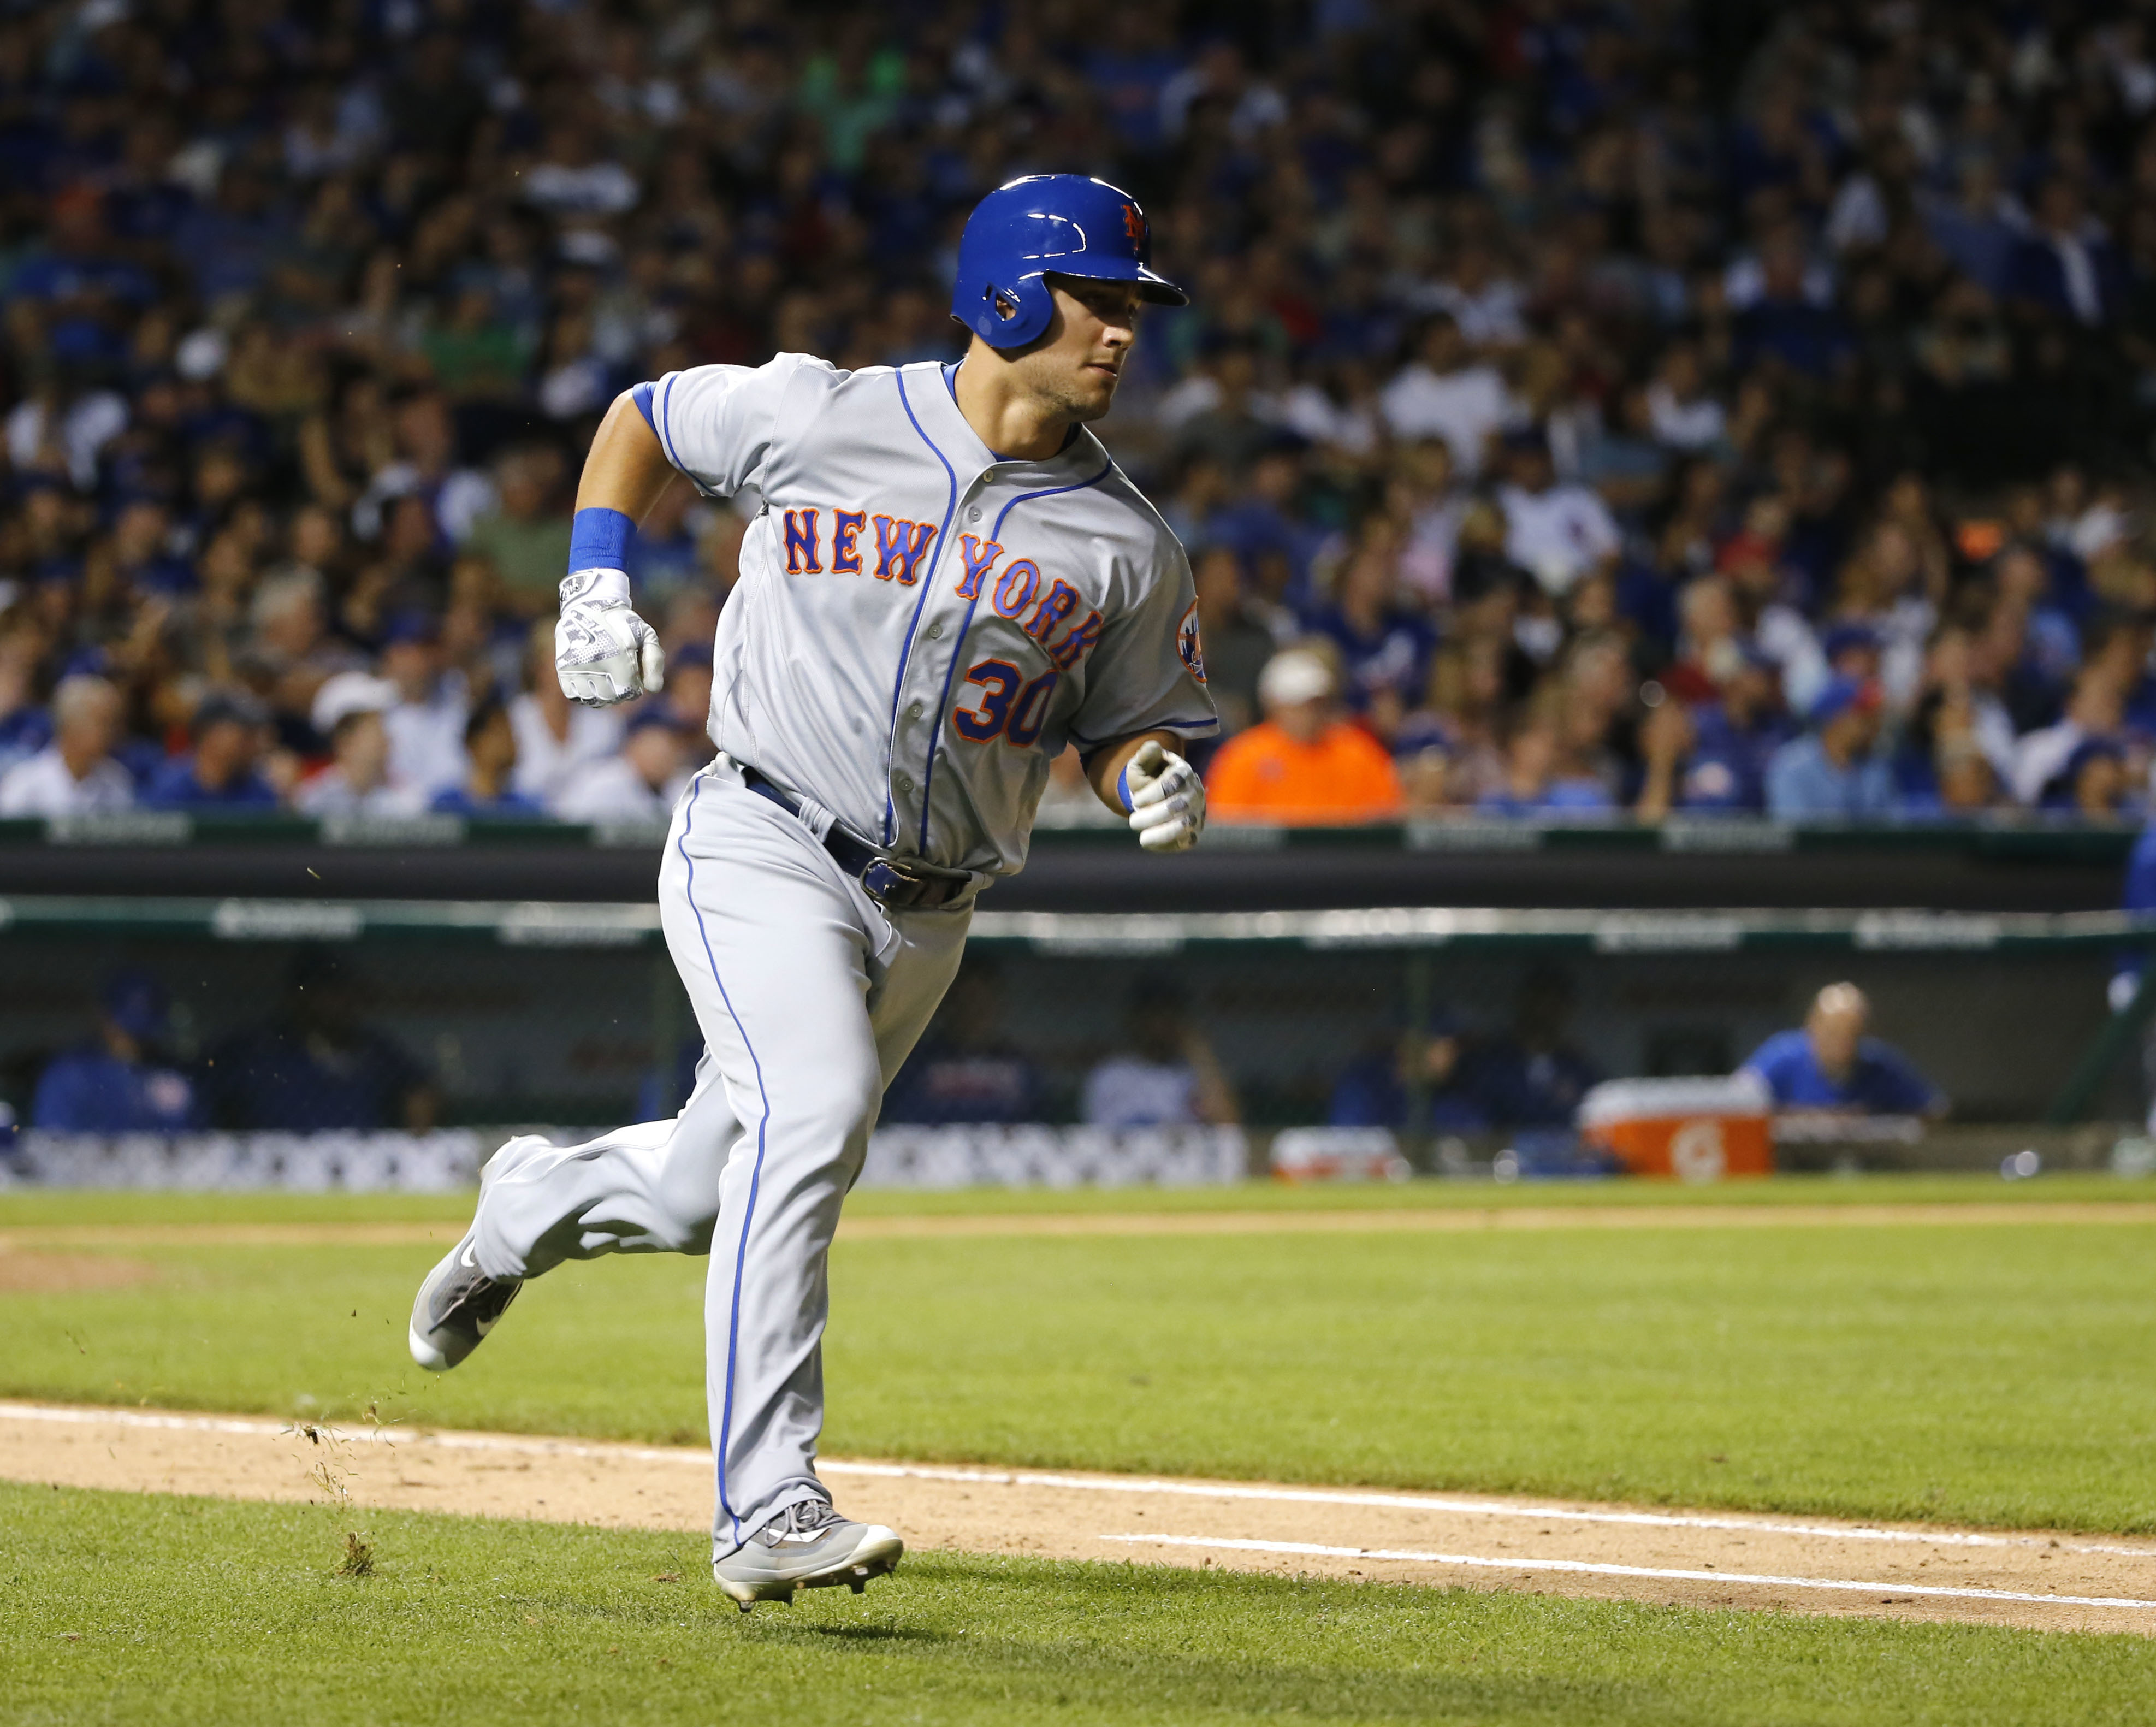 New York Mets' Michael Conforto heads to first after hitting a pinch-hit single during the ninth inning of a baseball game against the Chicago Cubs Monday, July 18, 2016, in Chicago. (AP Photo/Charles Rex Arbogast)